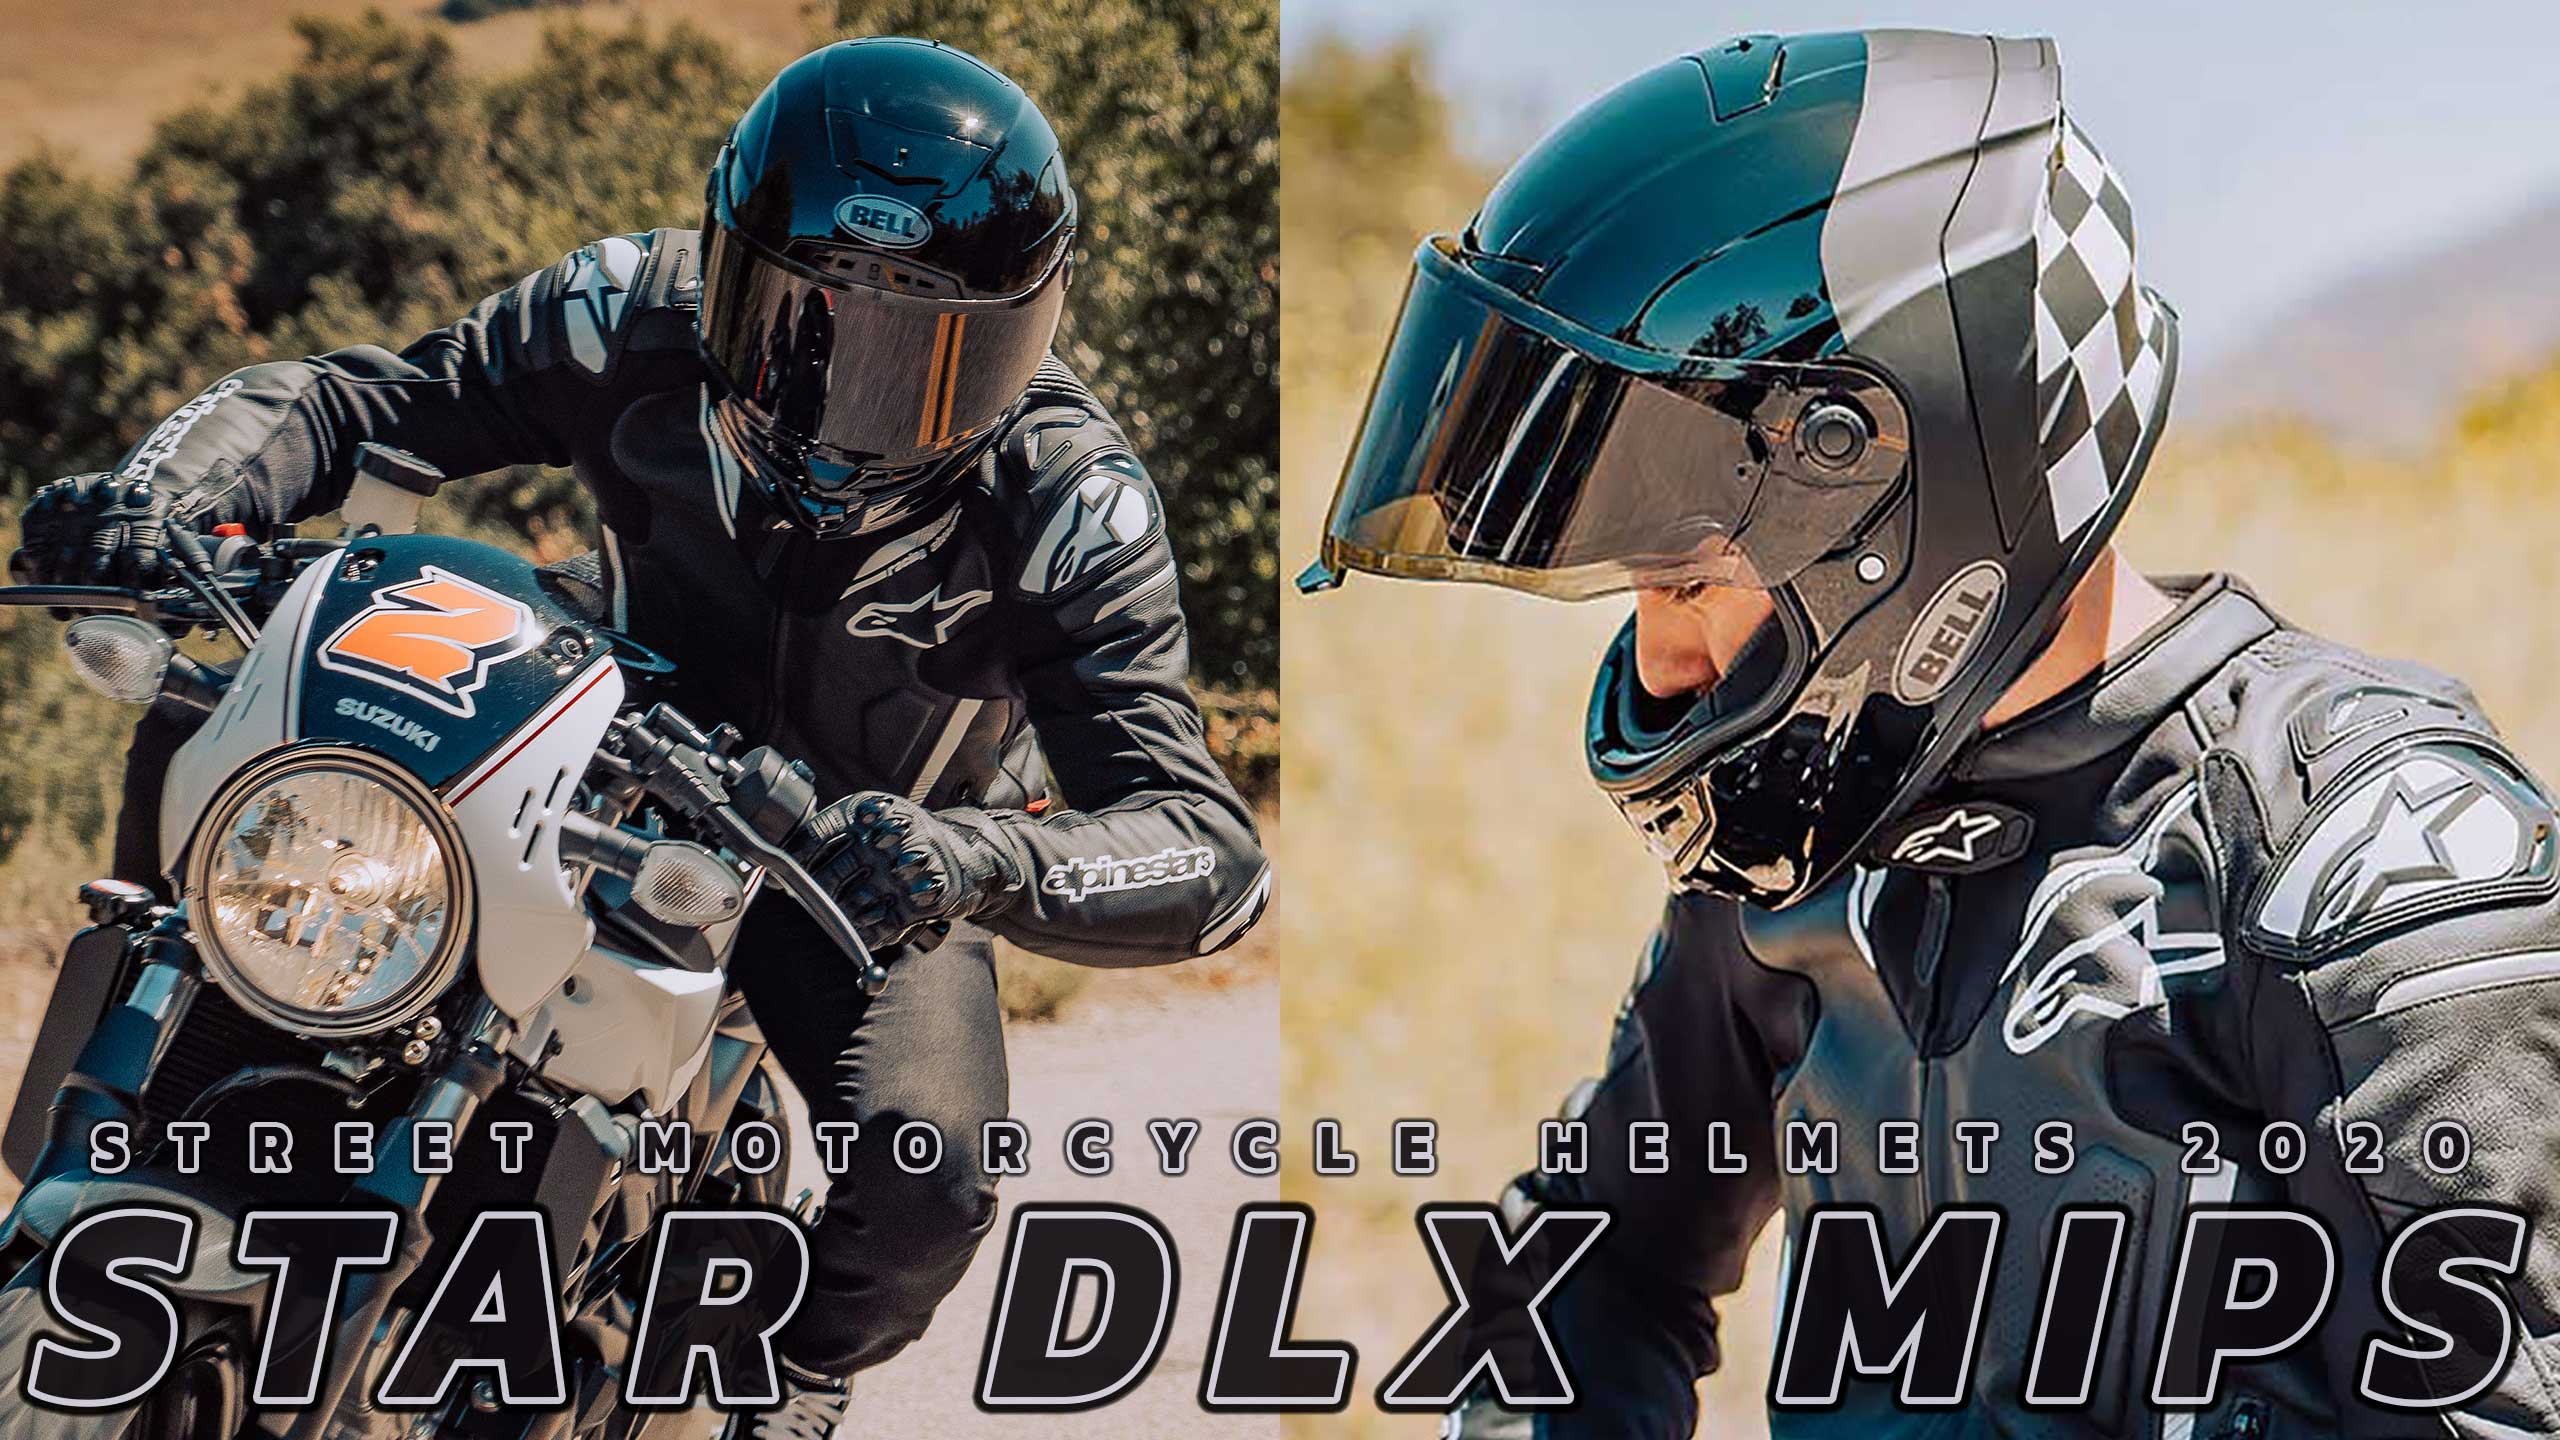 Bell Moto 2020 Introducing Star DLX MIPS Street Helmet Collections